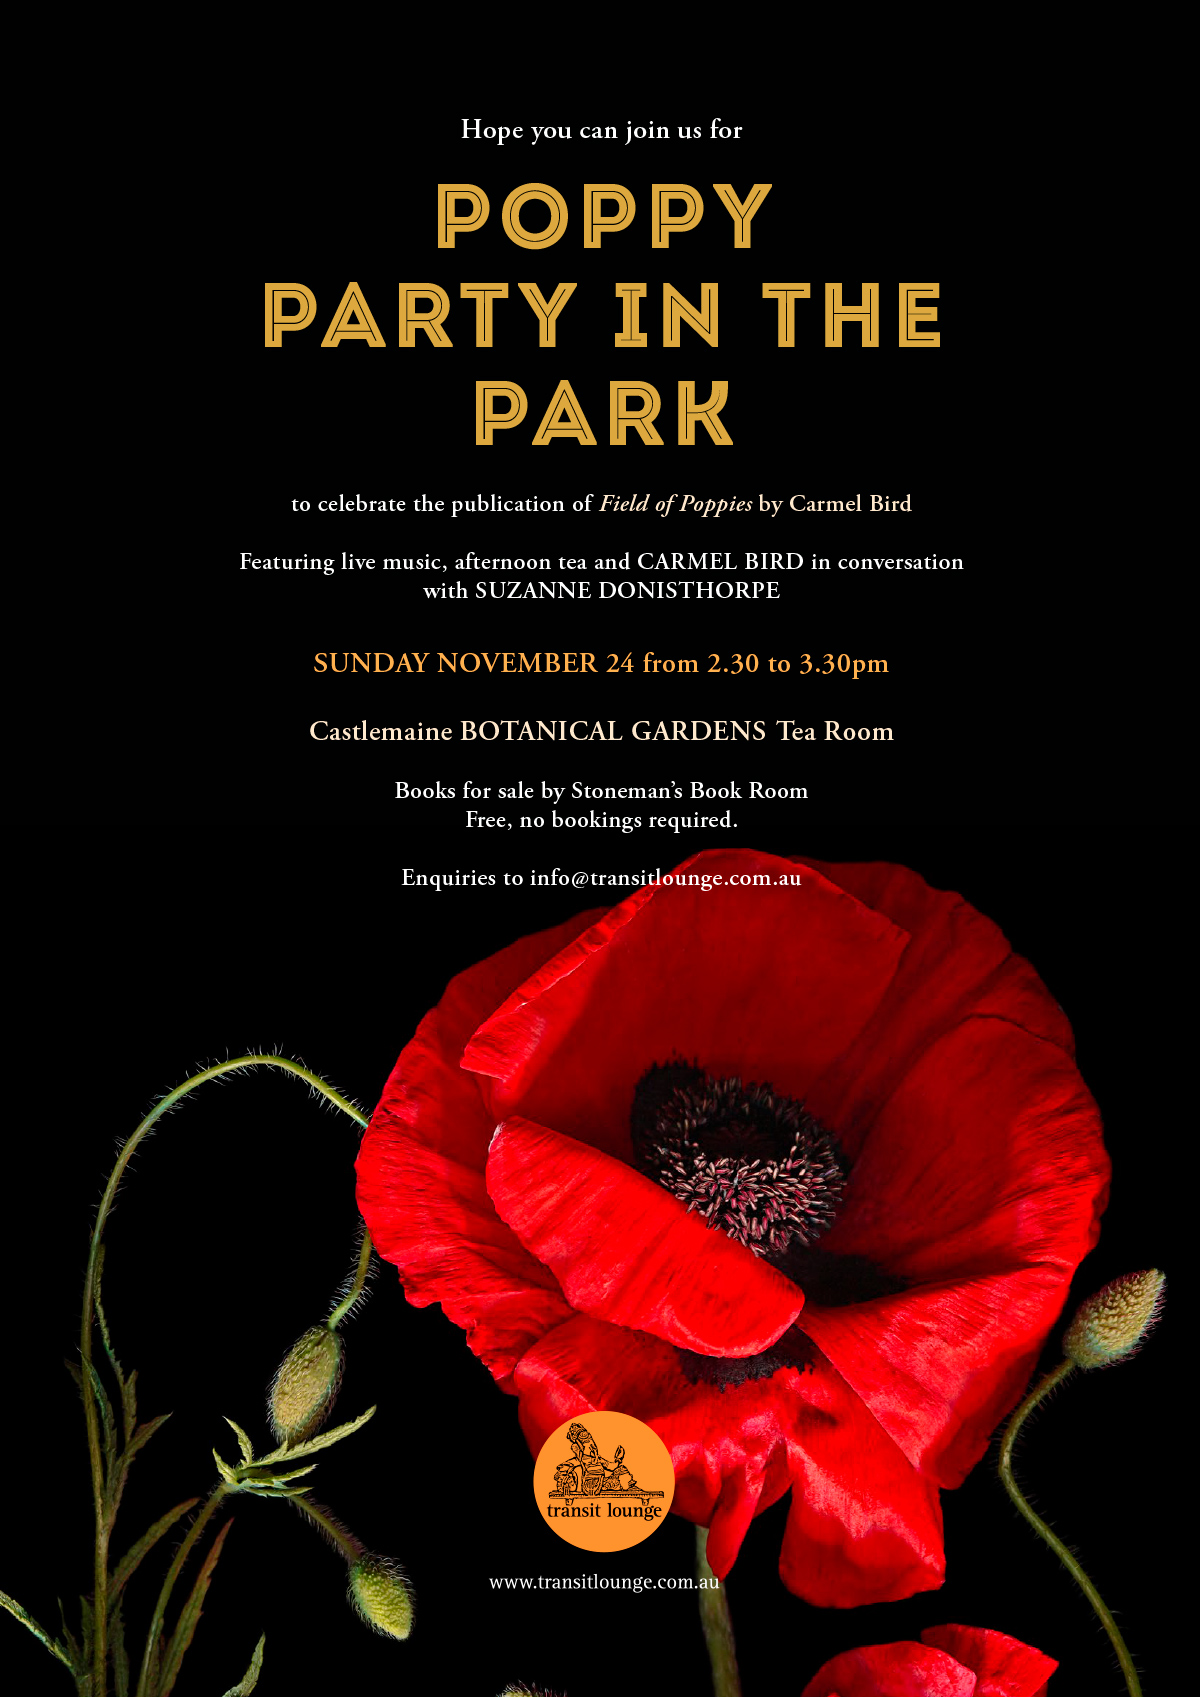 Poppy Party in the Park to celebrate publication of Carmel Bird's Field of Poppies